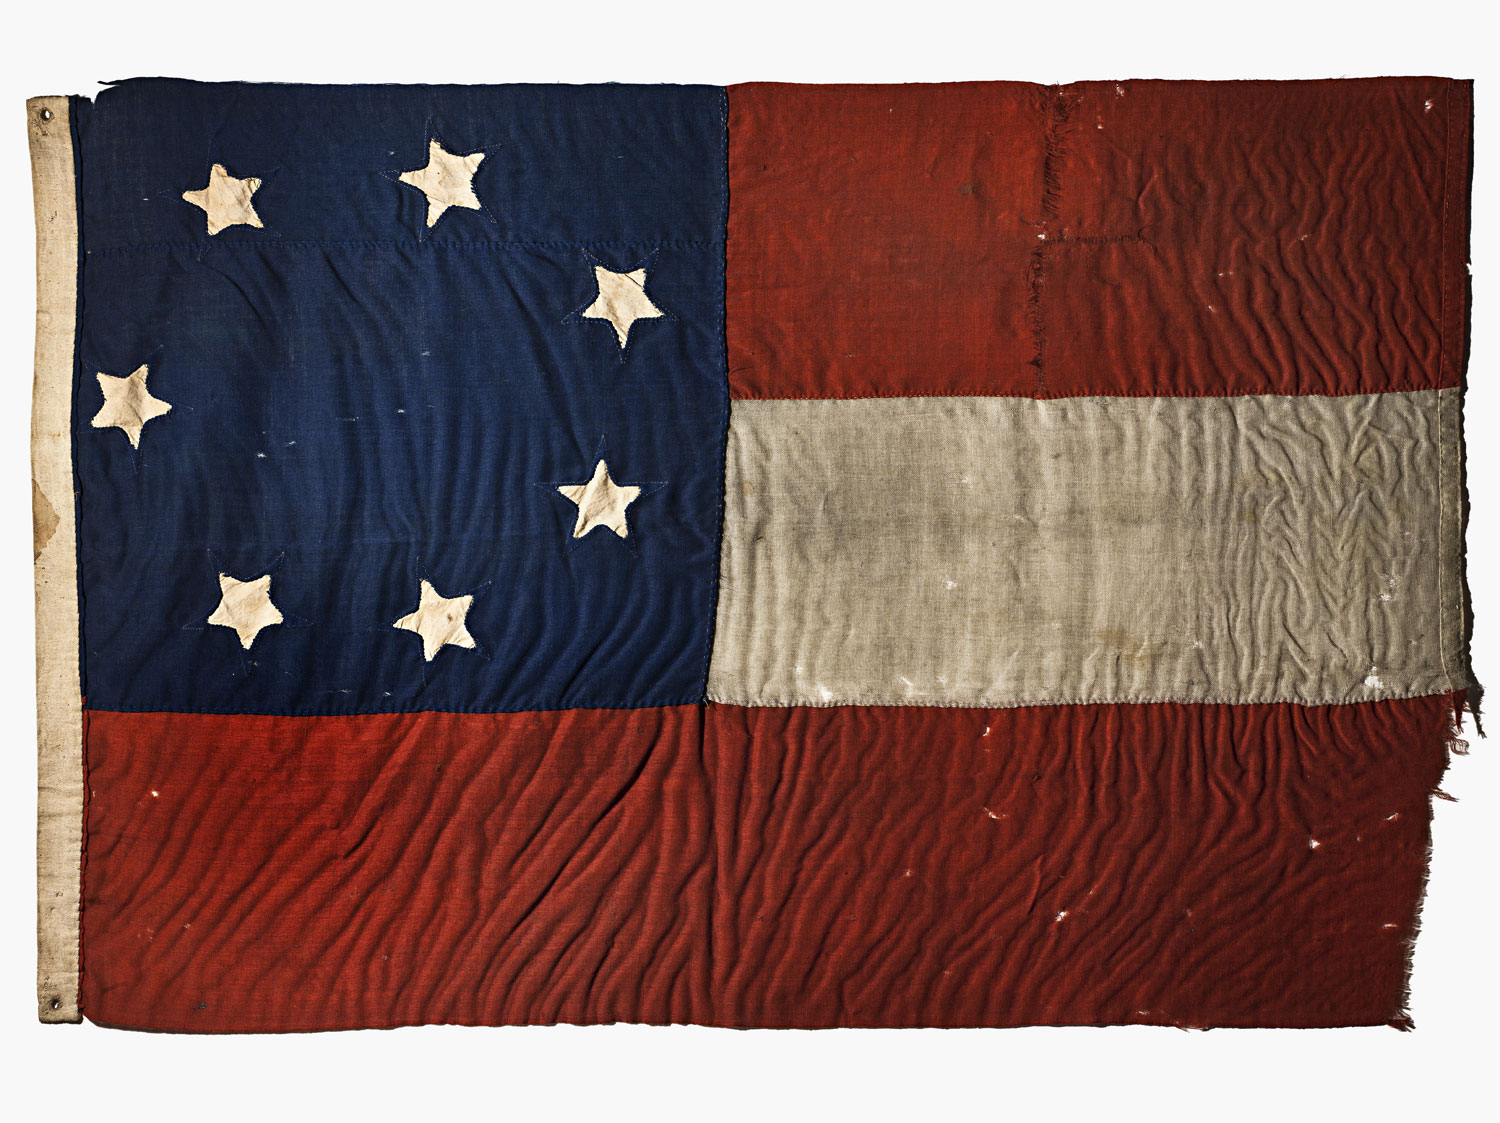 A seven star Confederate flag that was one of the first to fly over Ft. Sumter, in South Carolina.